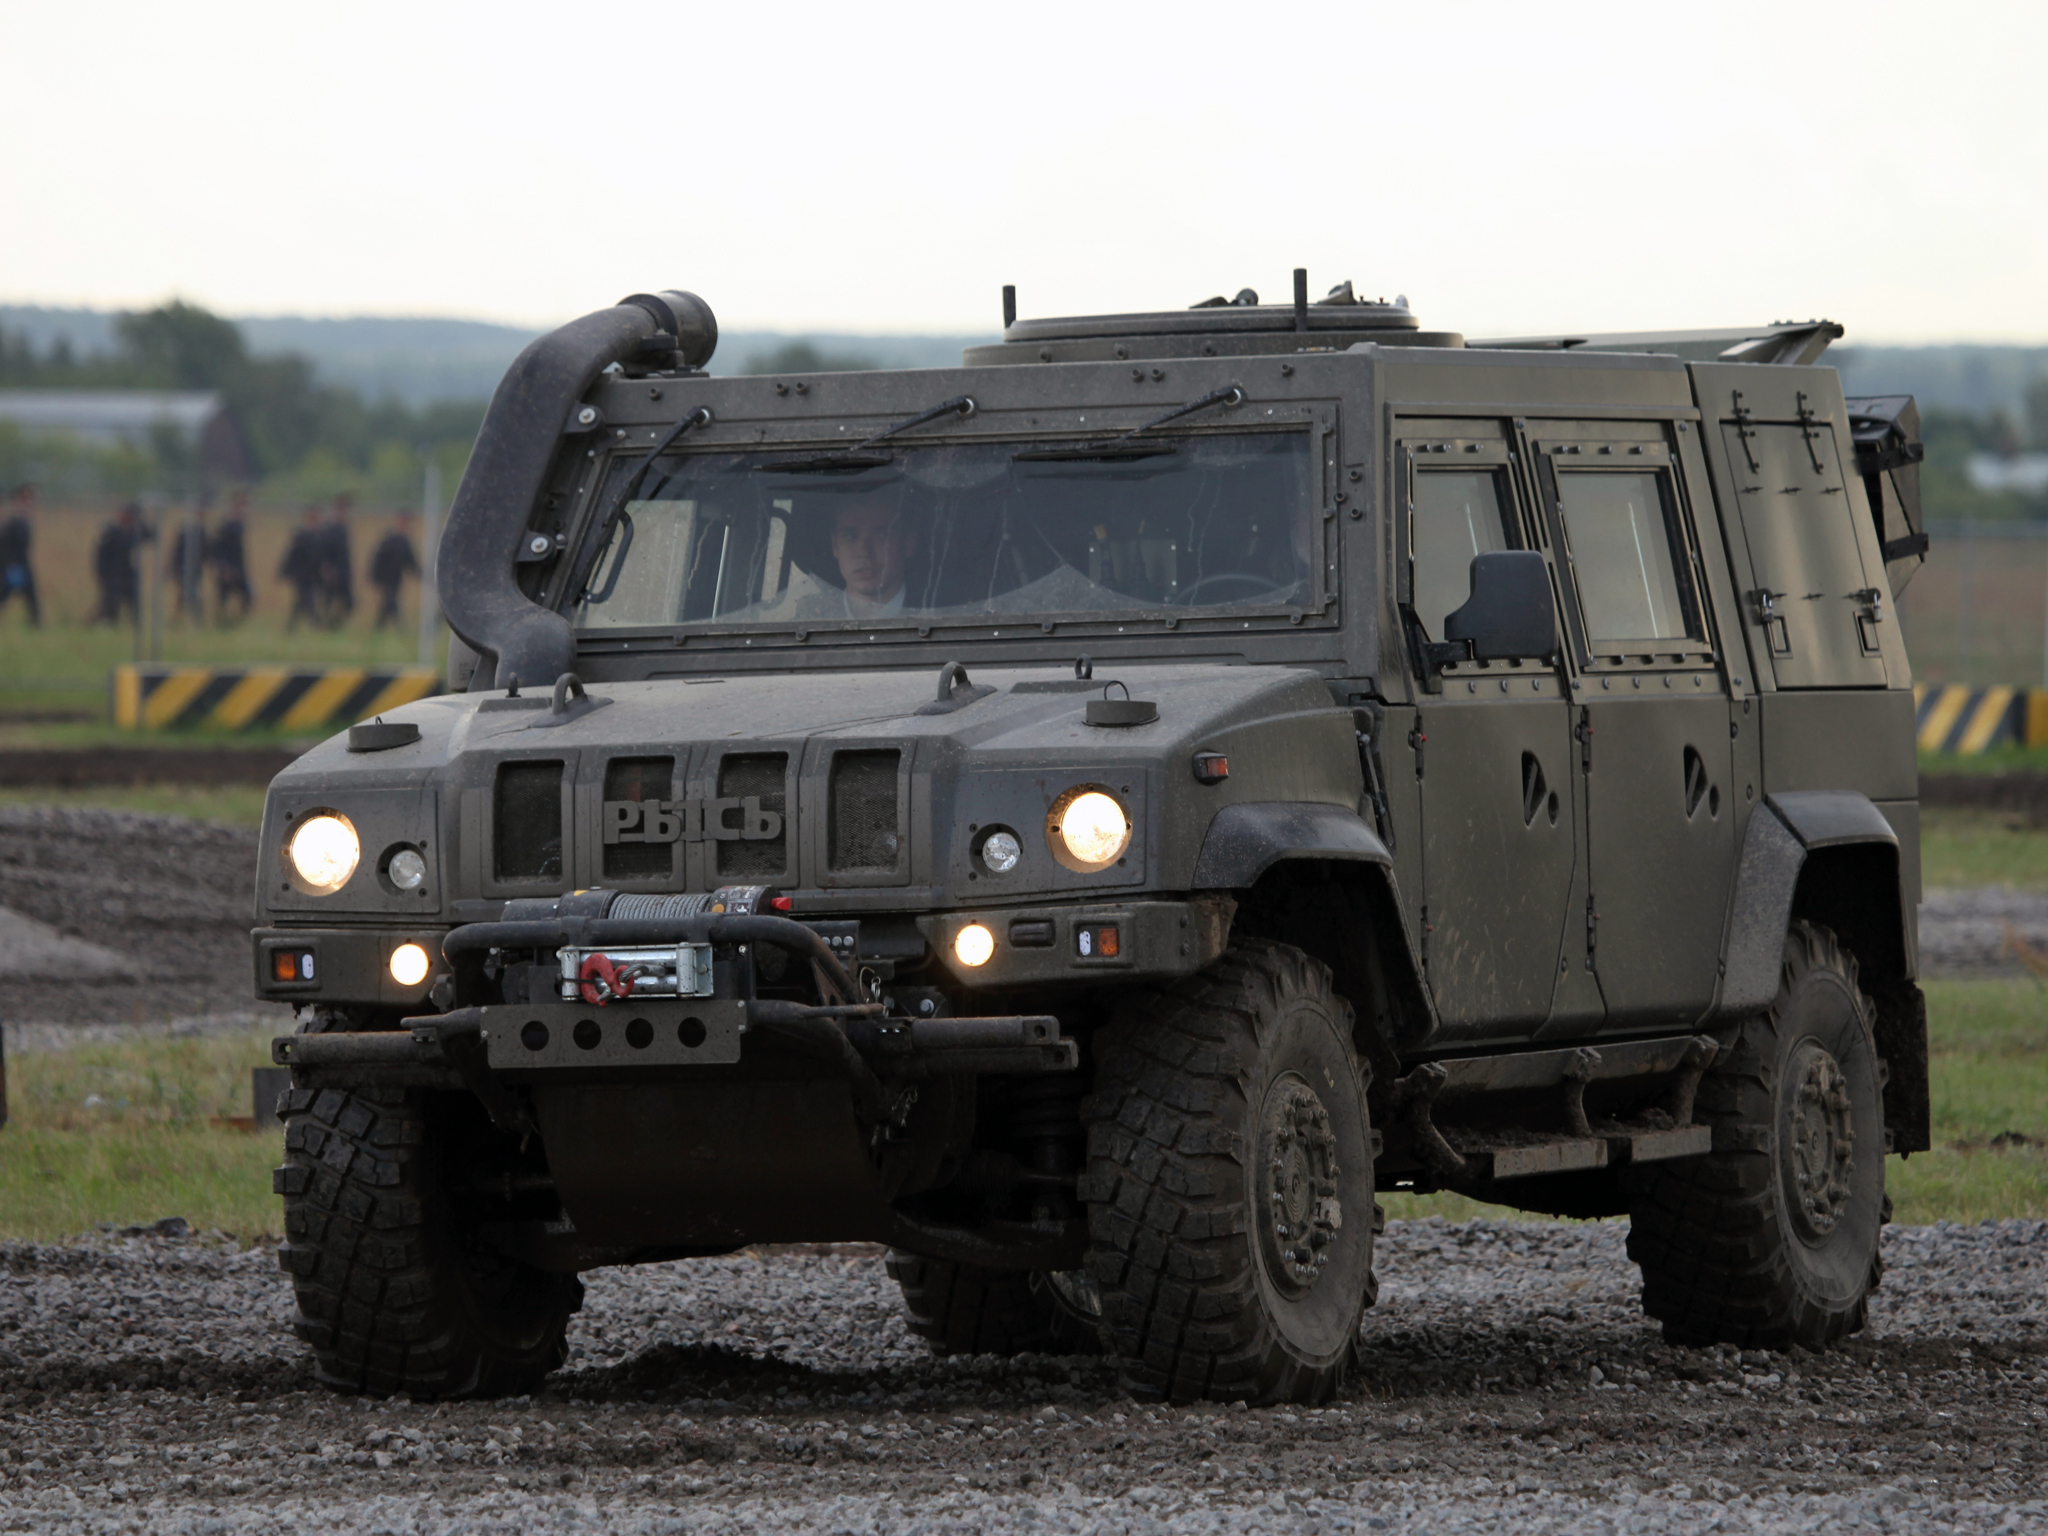 2011 iveco lmv lynx m65 4x4 military g wallpaper 2048x1536 214876 wallpaperup. Black Bedroom Furniture Sets. Home Design Ideas